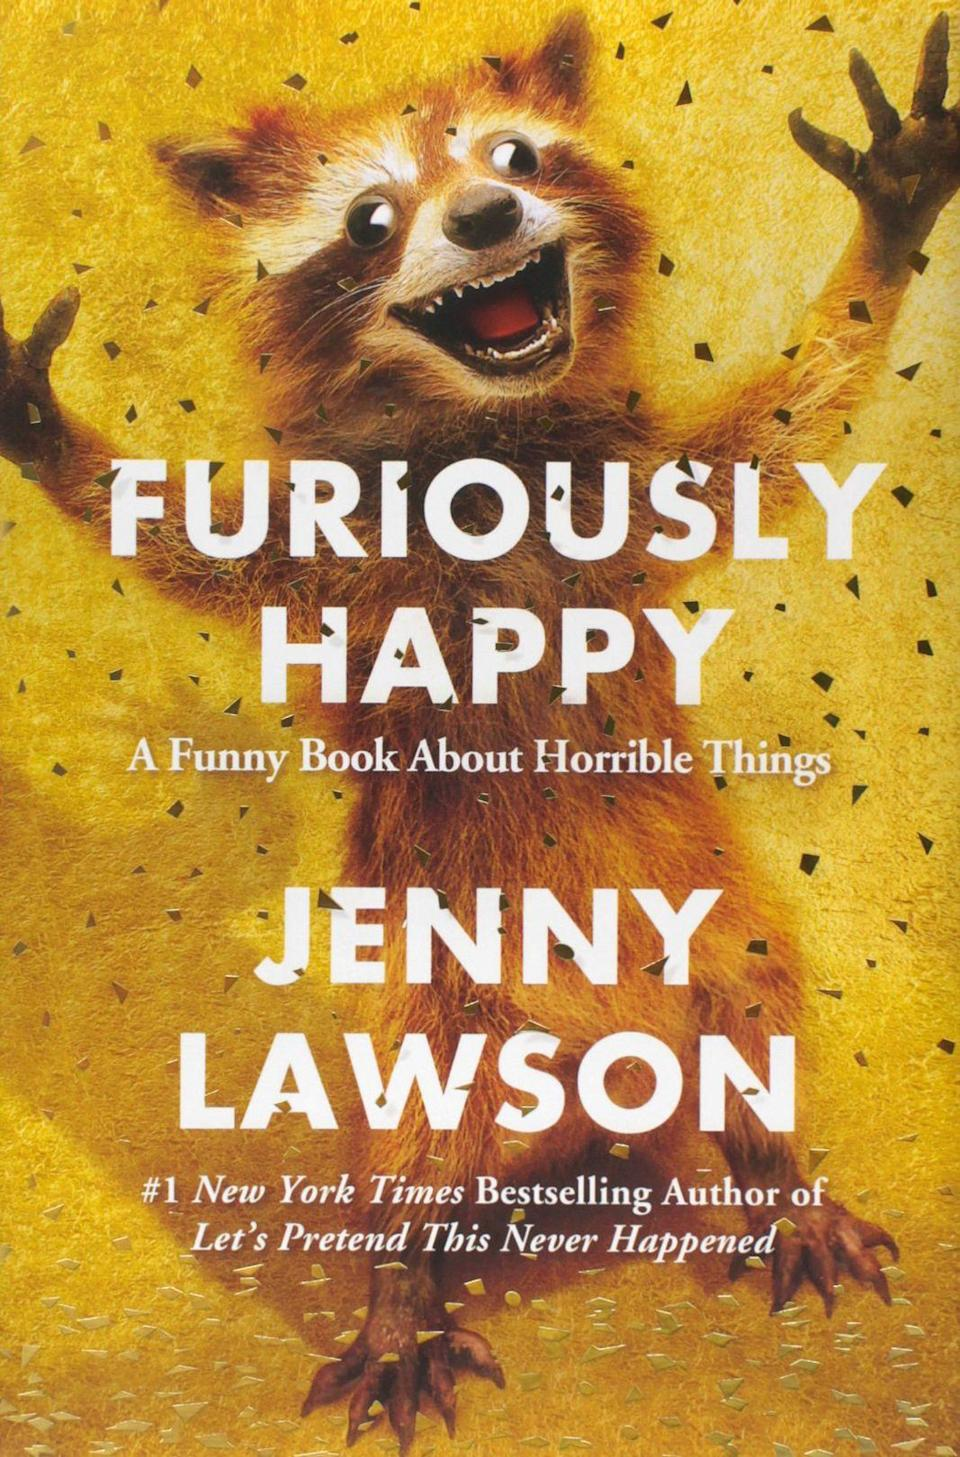 <p><strong><em>Furiously Happy</em></strong></p><p>By Jenny Lawson</p><p><em>New York Times</em> bestselling author Jenny Lawson's latest book is a hilarious memoir that chronicles her lifelong struggle with mental illness. Believe it or not, crippling depression and anxiety can be funny. Reading between the lines, it becomes clear that the book is unequivocally about joy and embracing happiness wherever and whenever we find it. That sounds like something we should all be doing a little more often.</p>